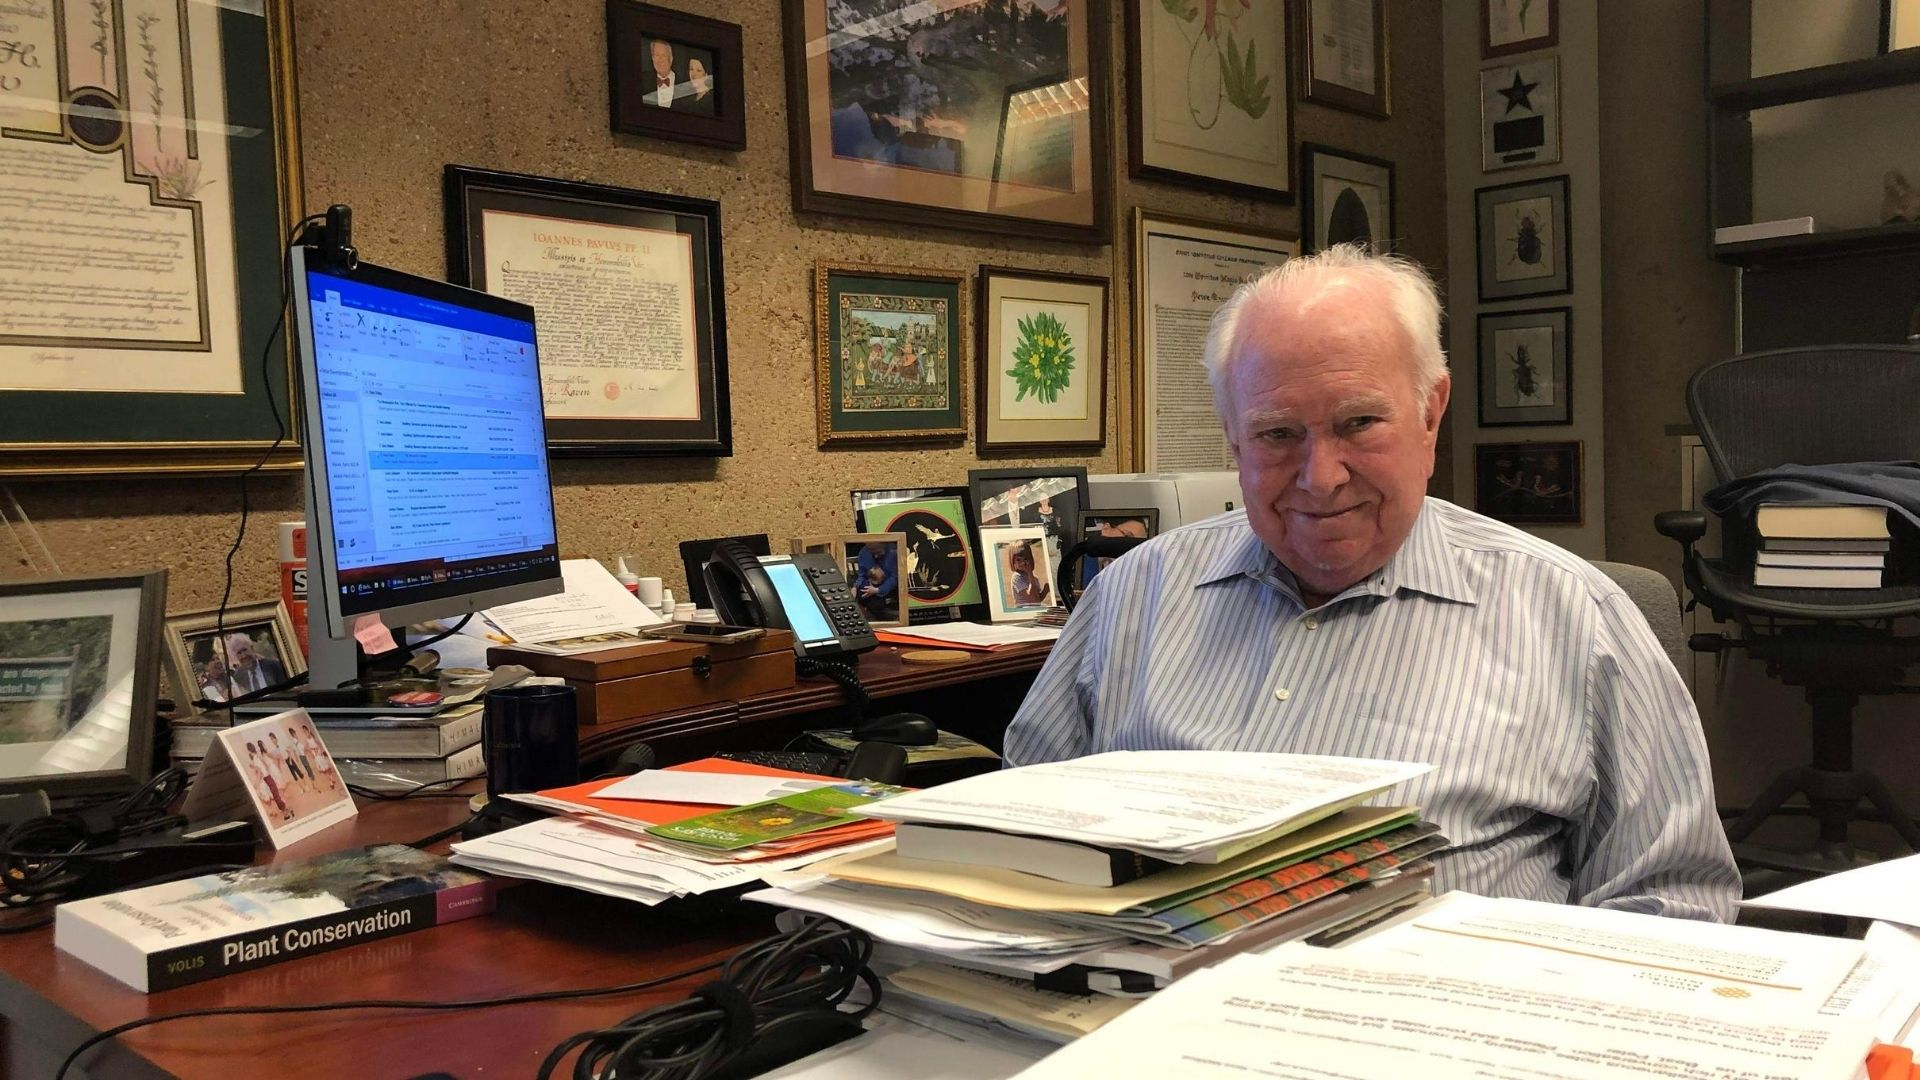 Dr. Peter Raven in his office